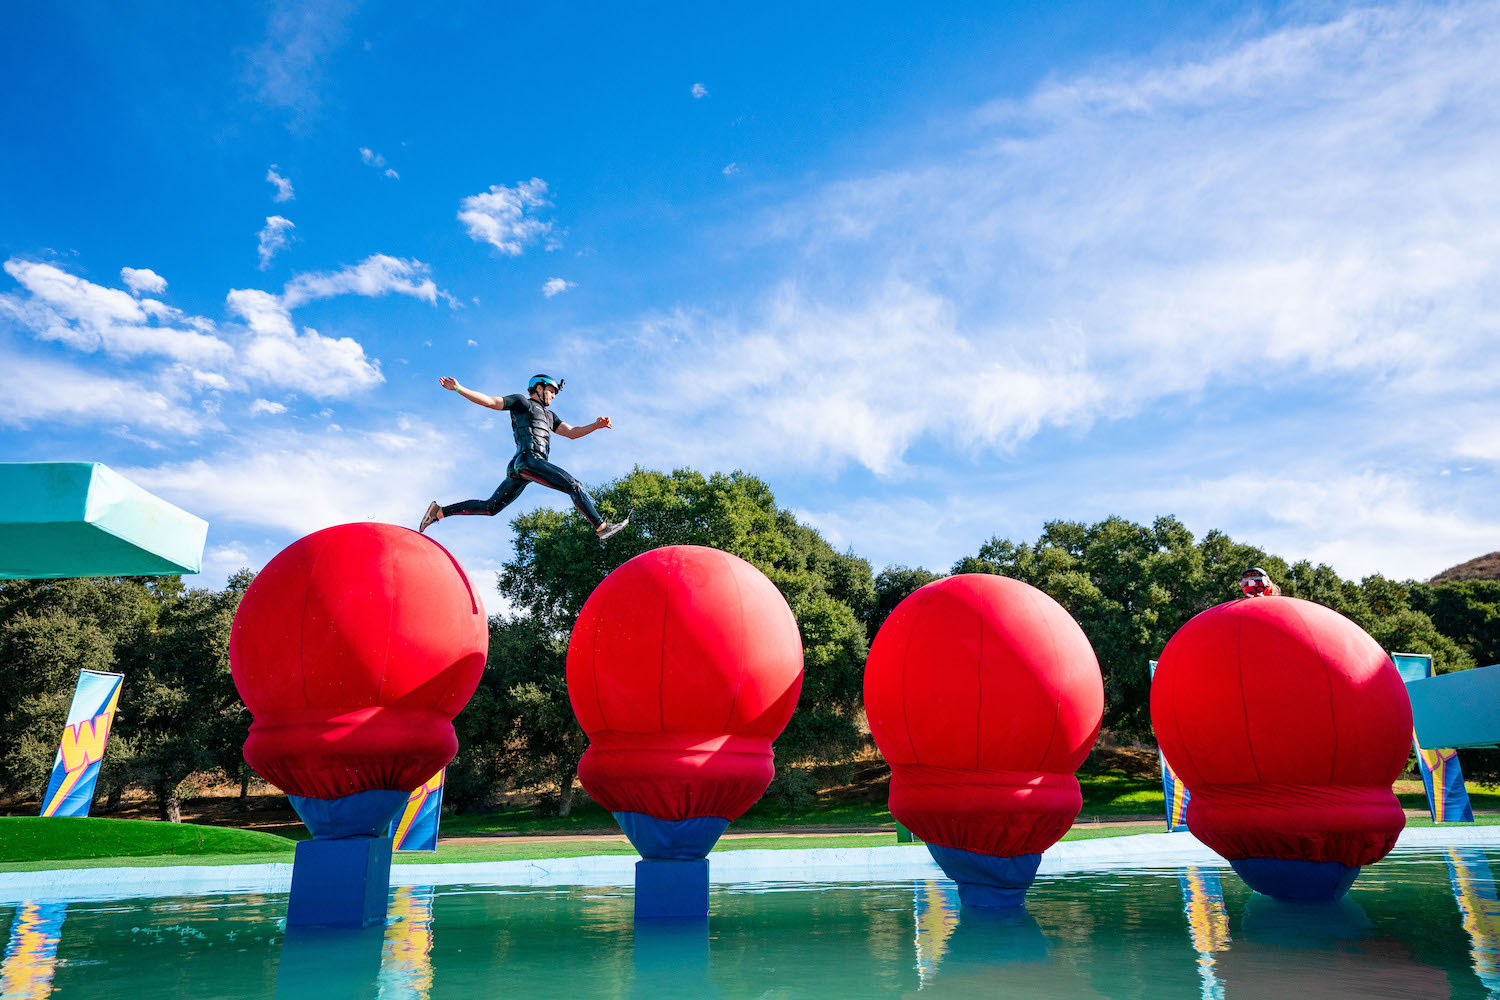 Wipeout Big Red Balls Course